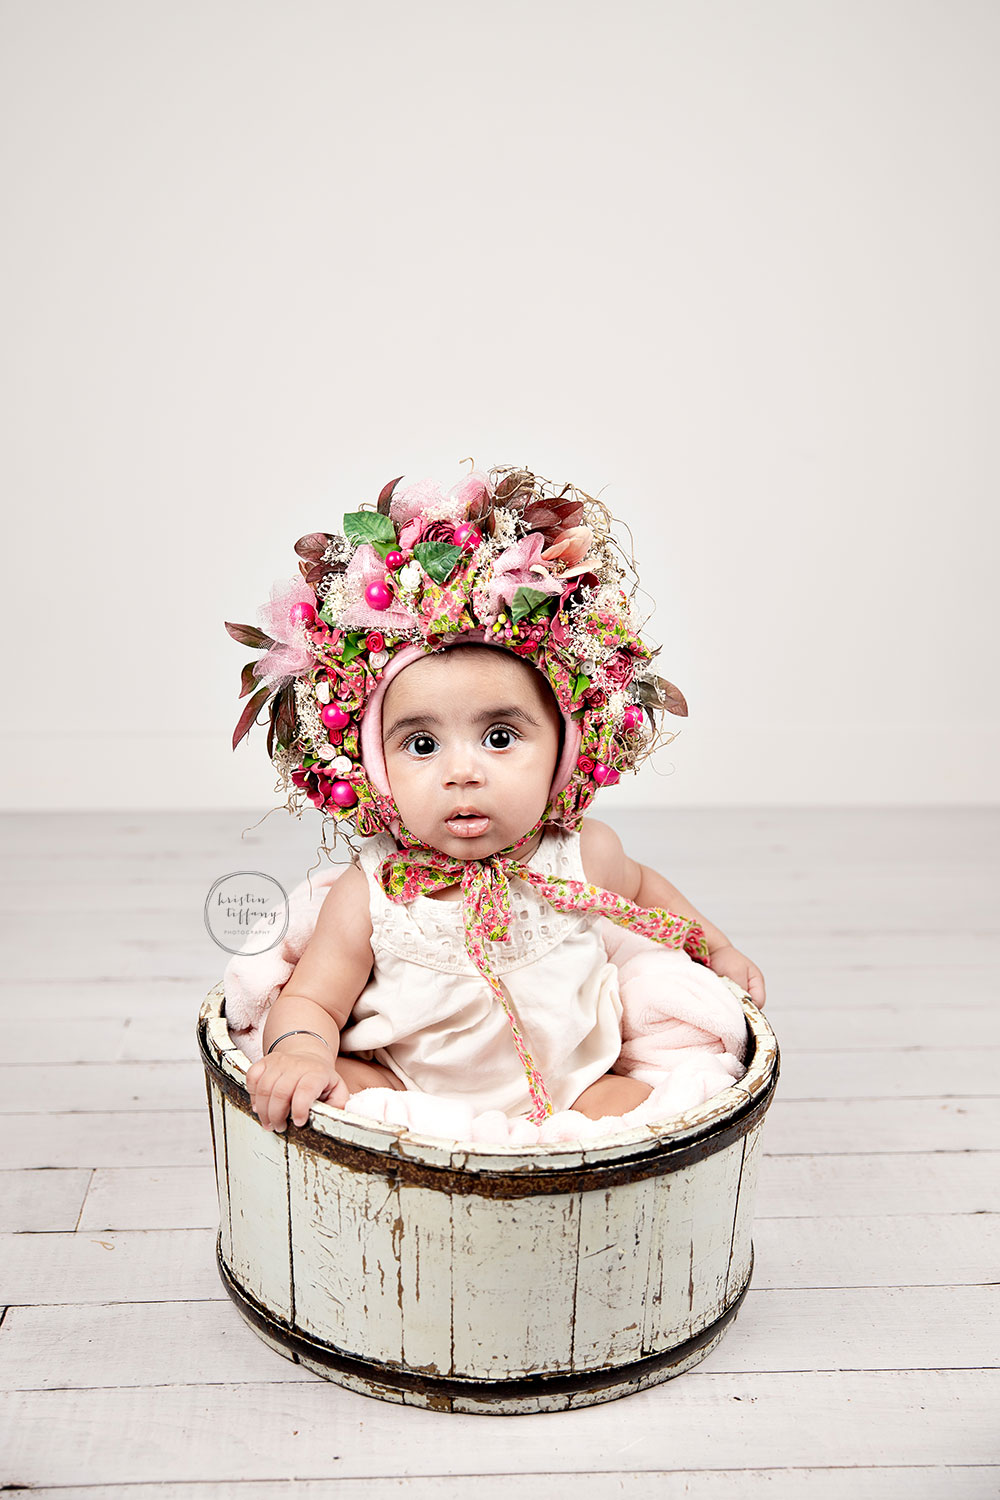 a photo of a baby girl at her photo shoot